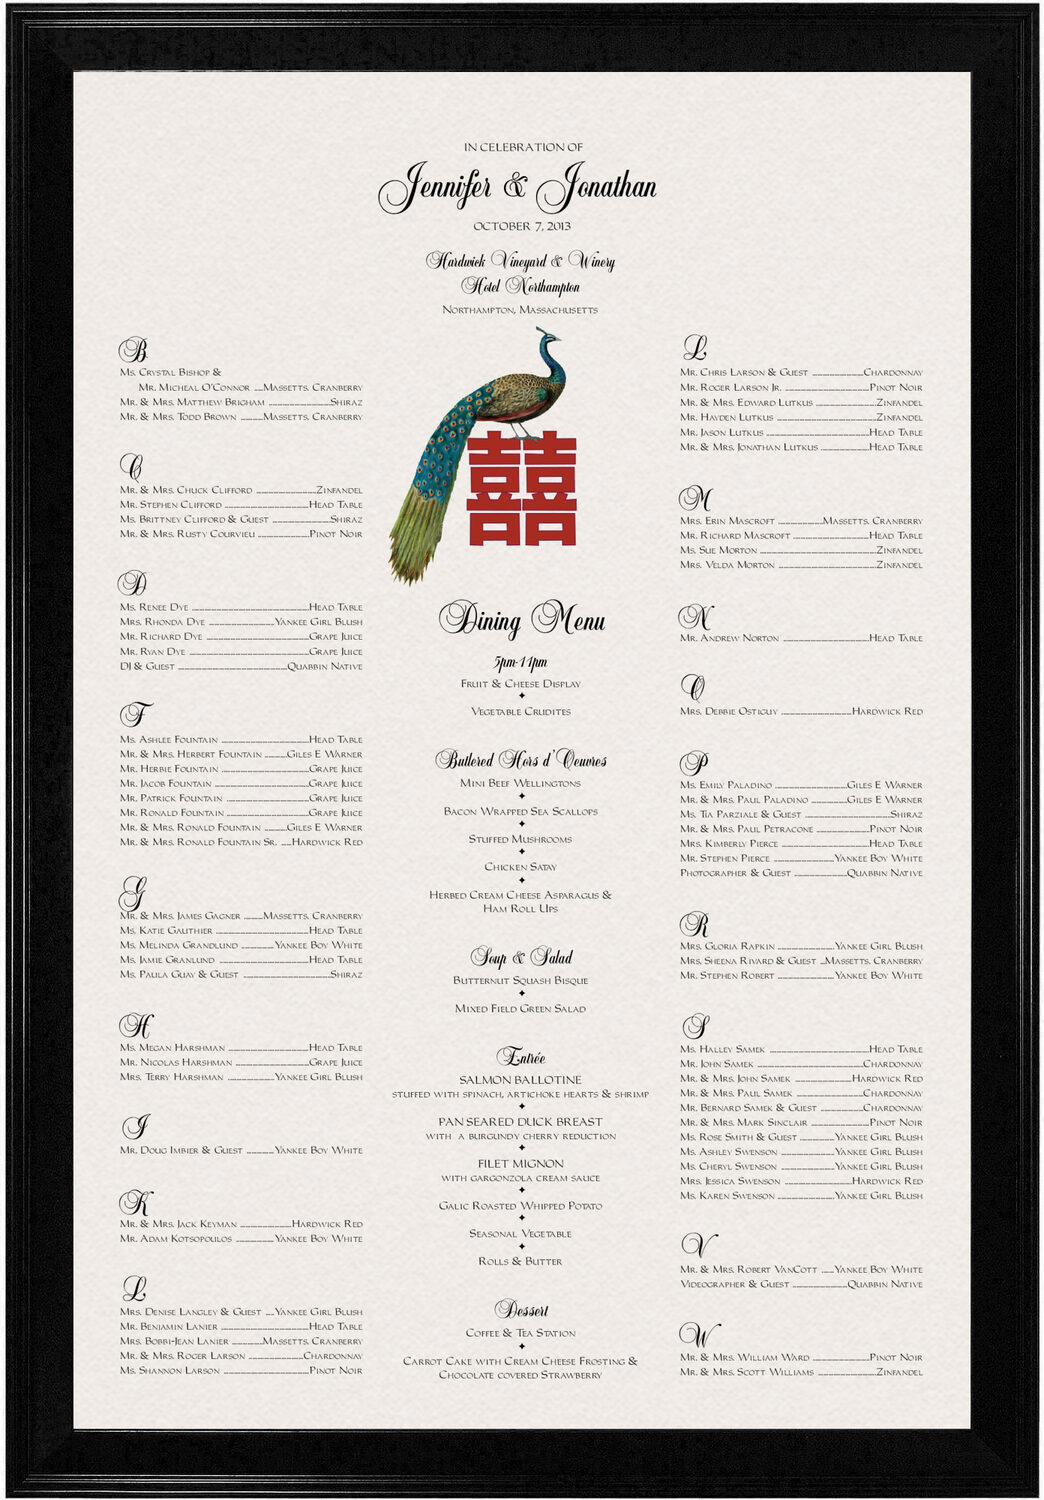 Photograph of Double Happiness Peacock Seating Charts